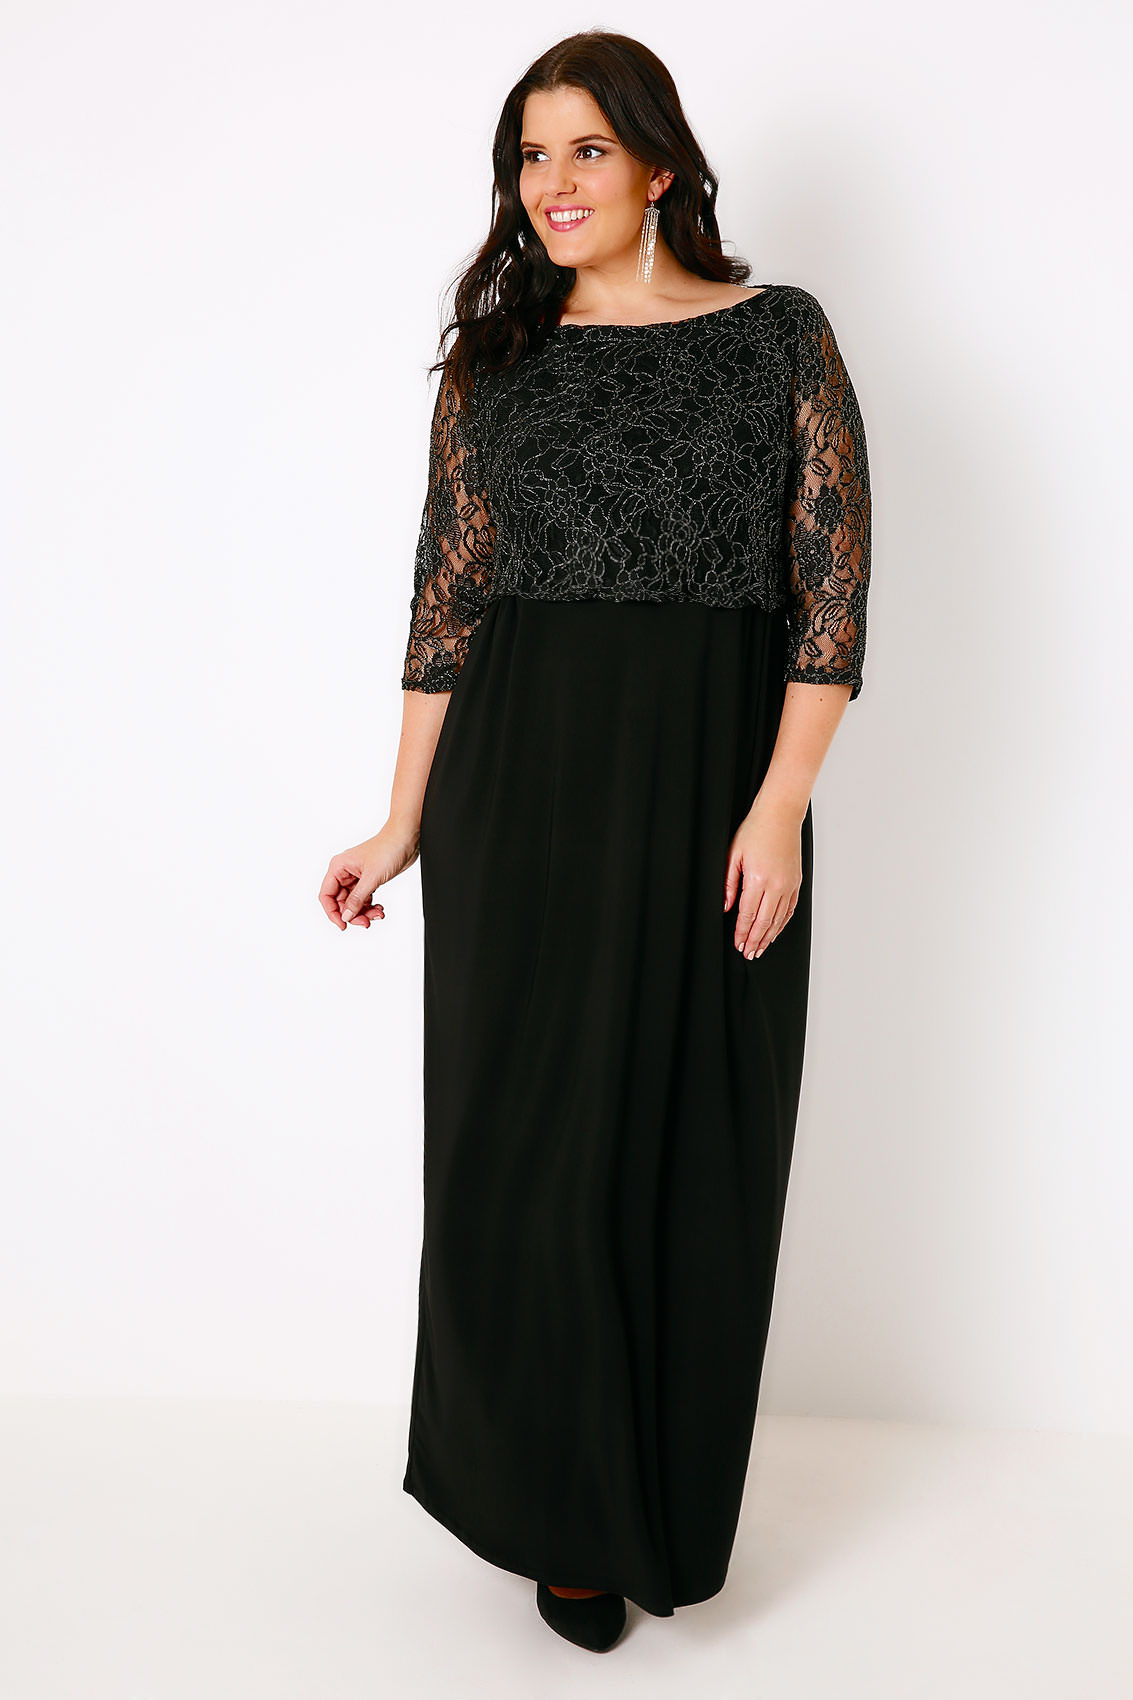 Plus Size Lace Dresses Maxi 47